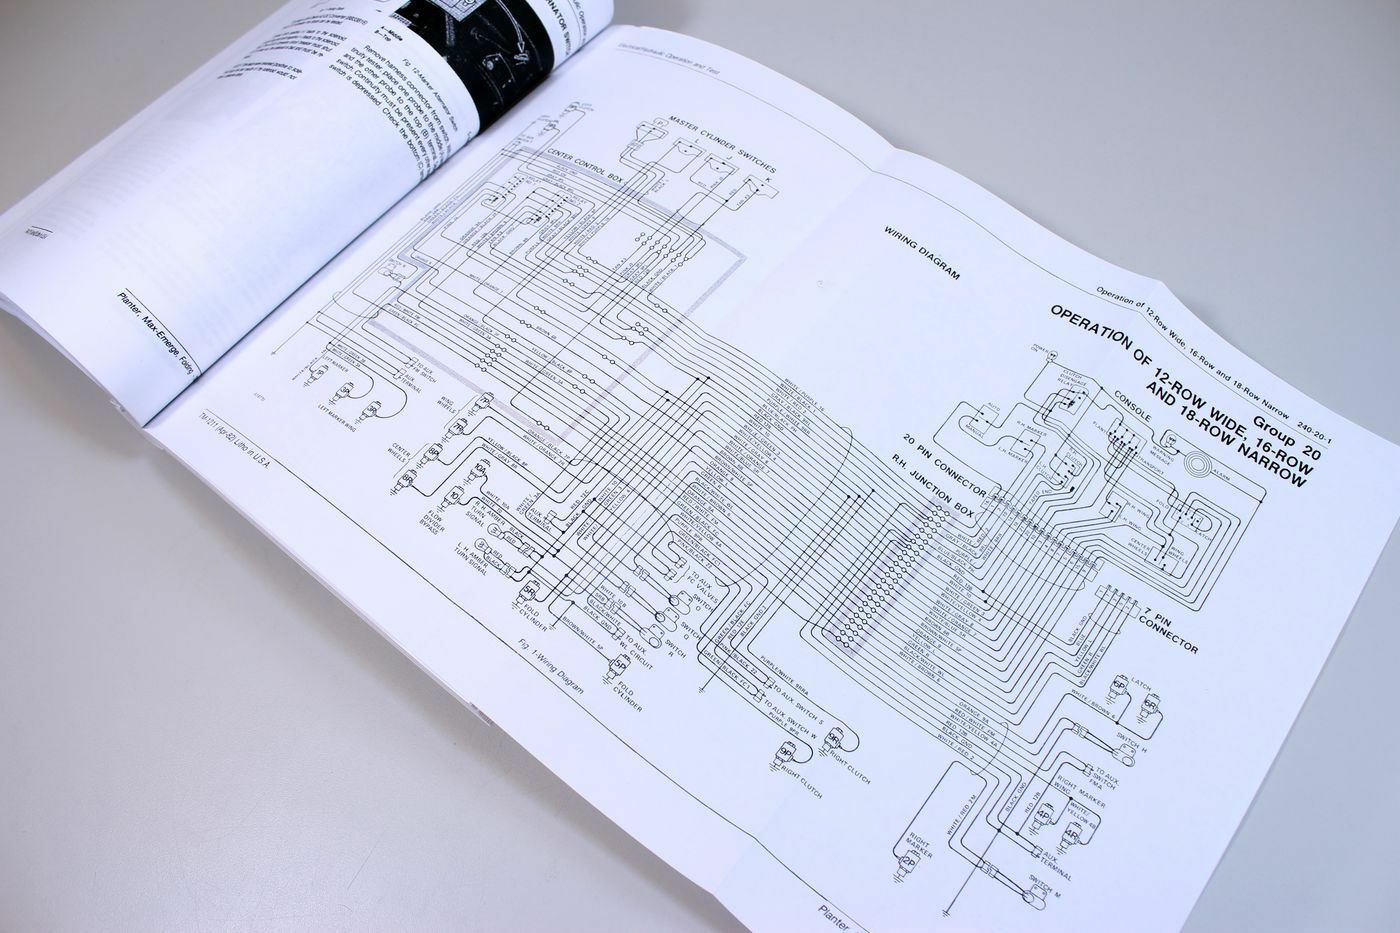 John Deere 7000 Folding Max Emerge Planter Service Repair Manual Wiring Diagram Solenoid Shop Book Jd Ebay